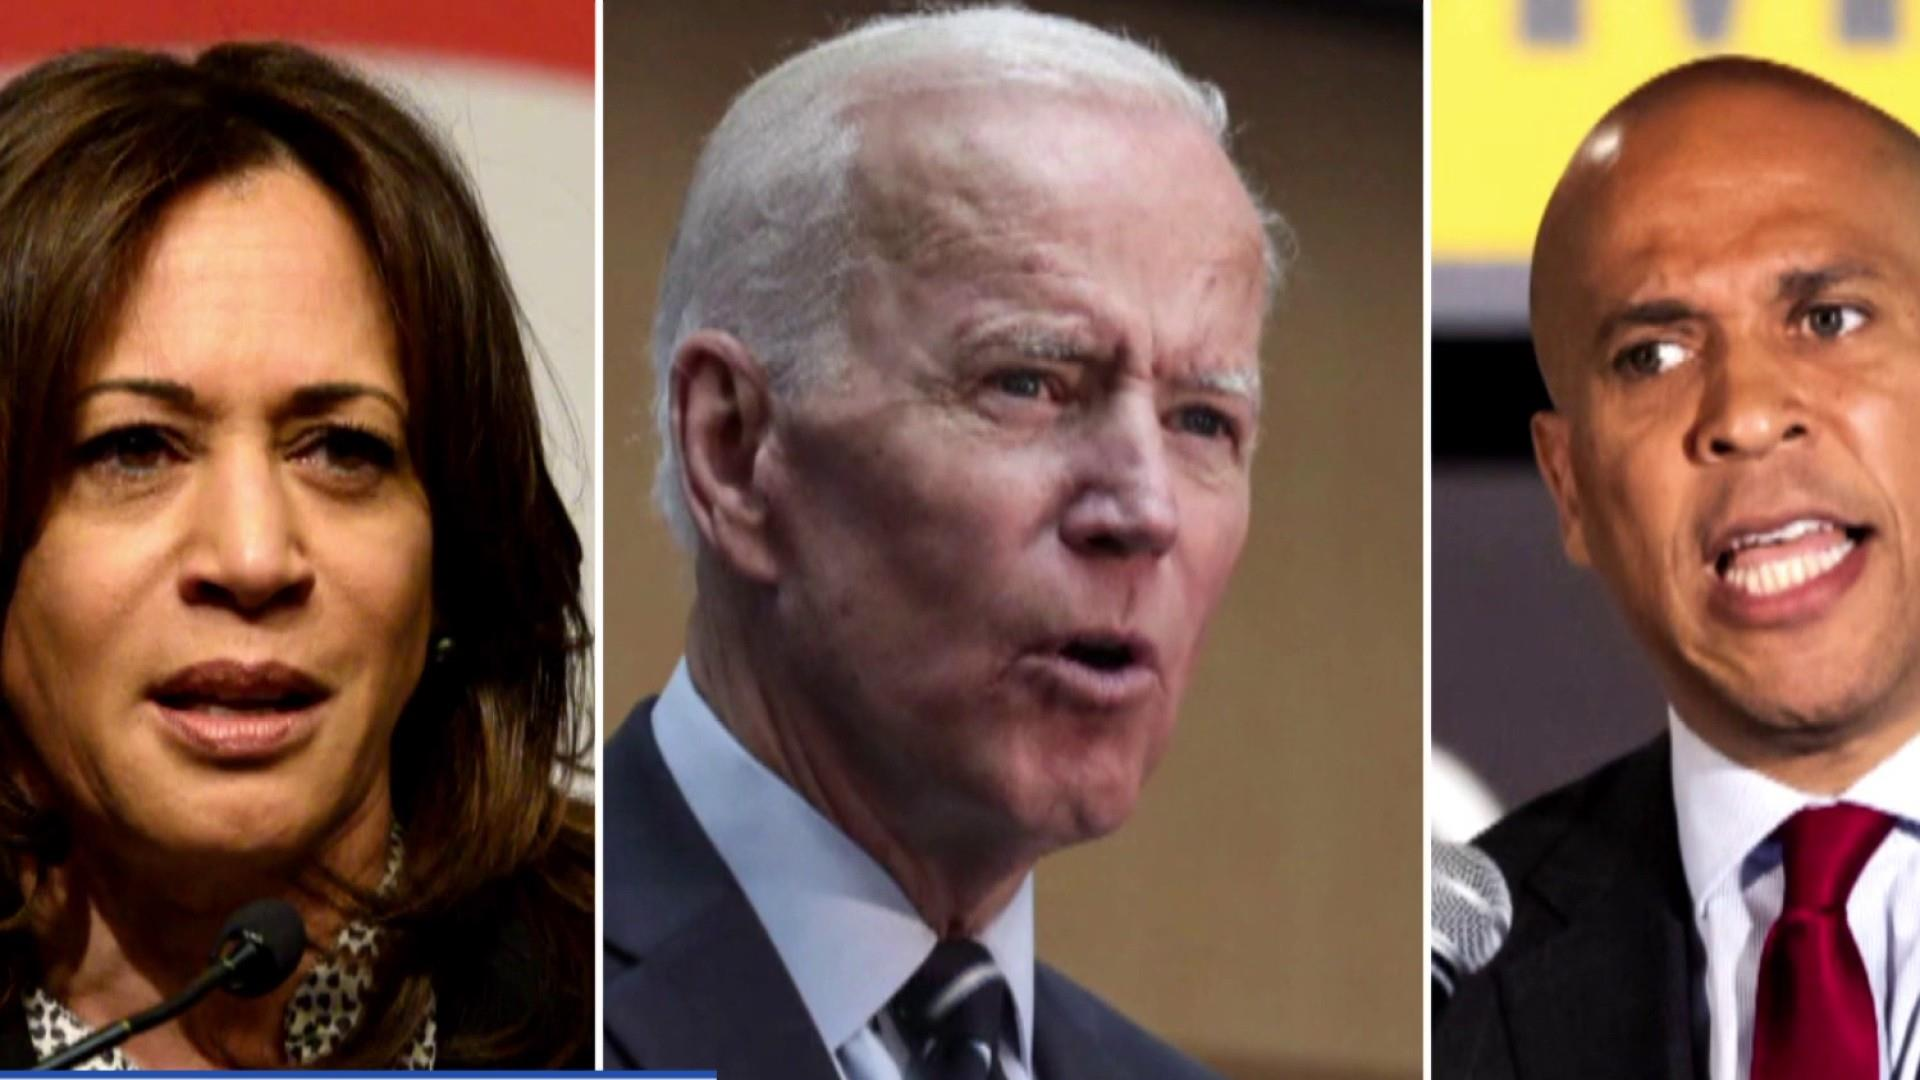 Will Biden slip again or succeed: what to watch for in tonight's debate